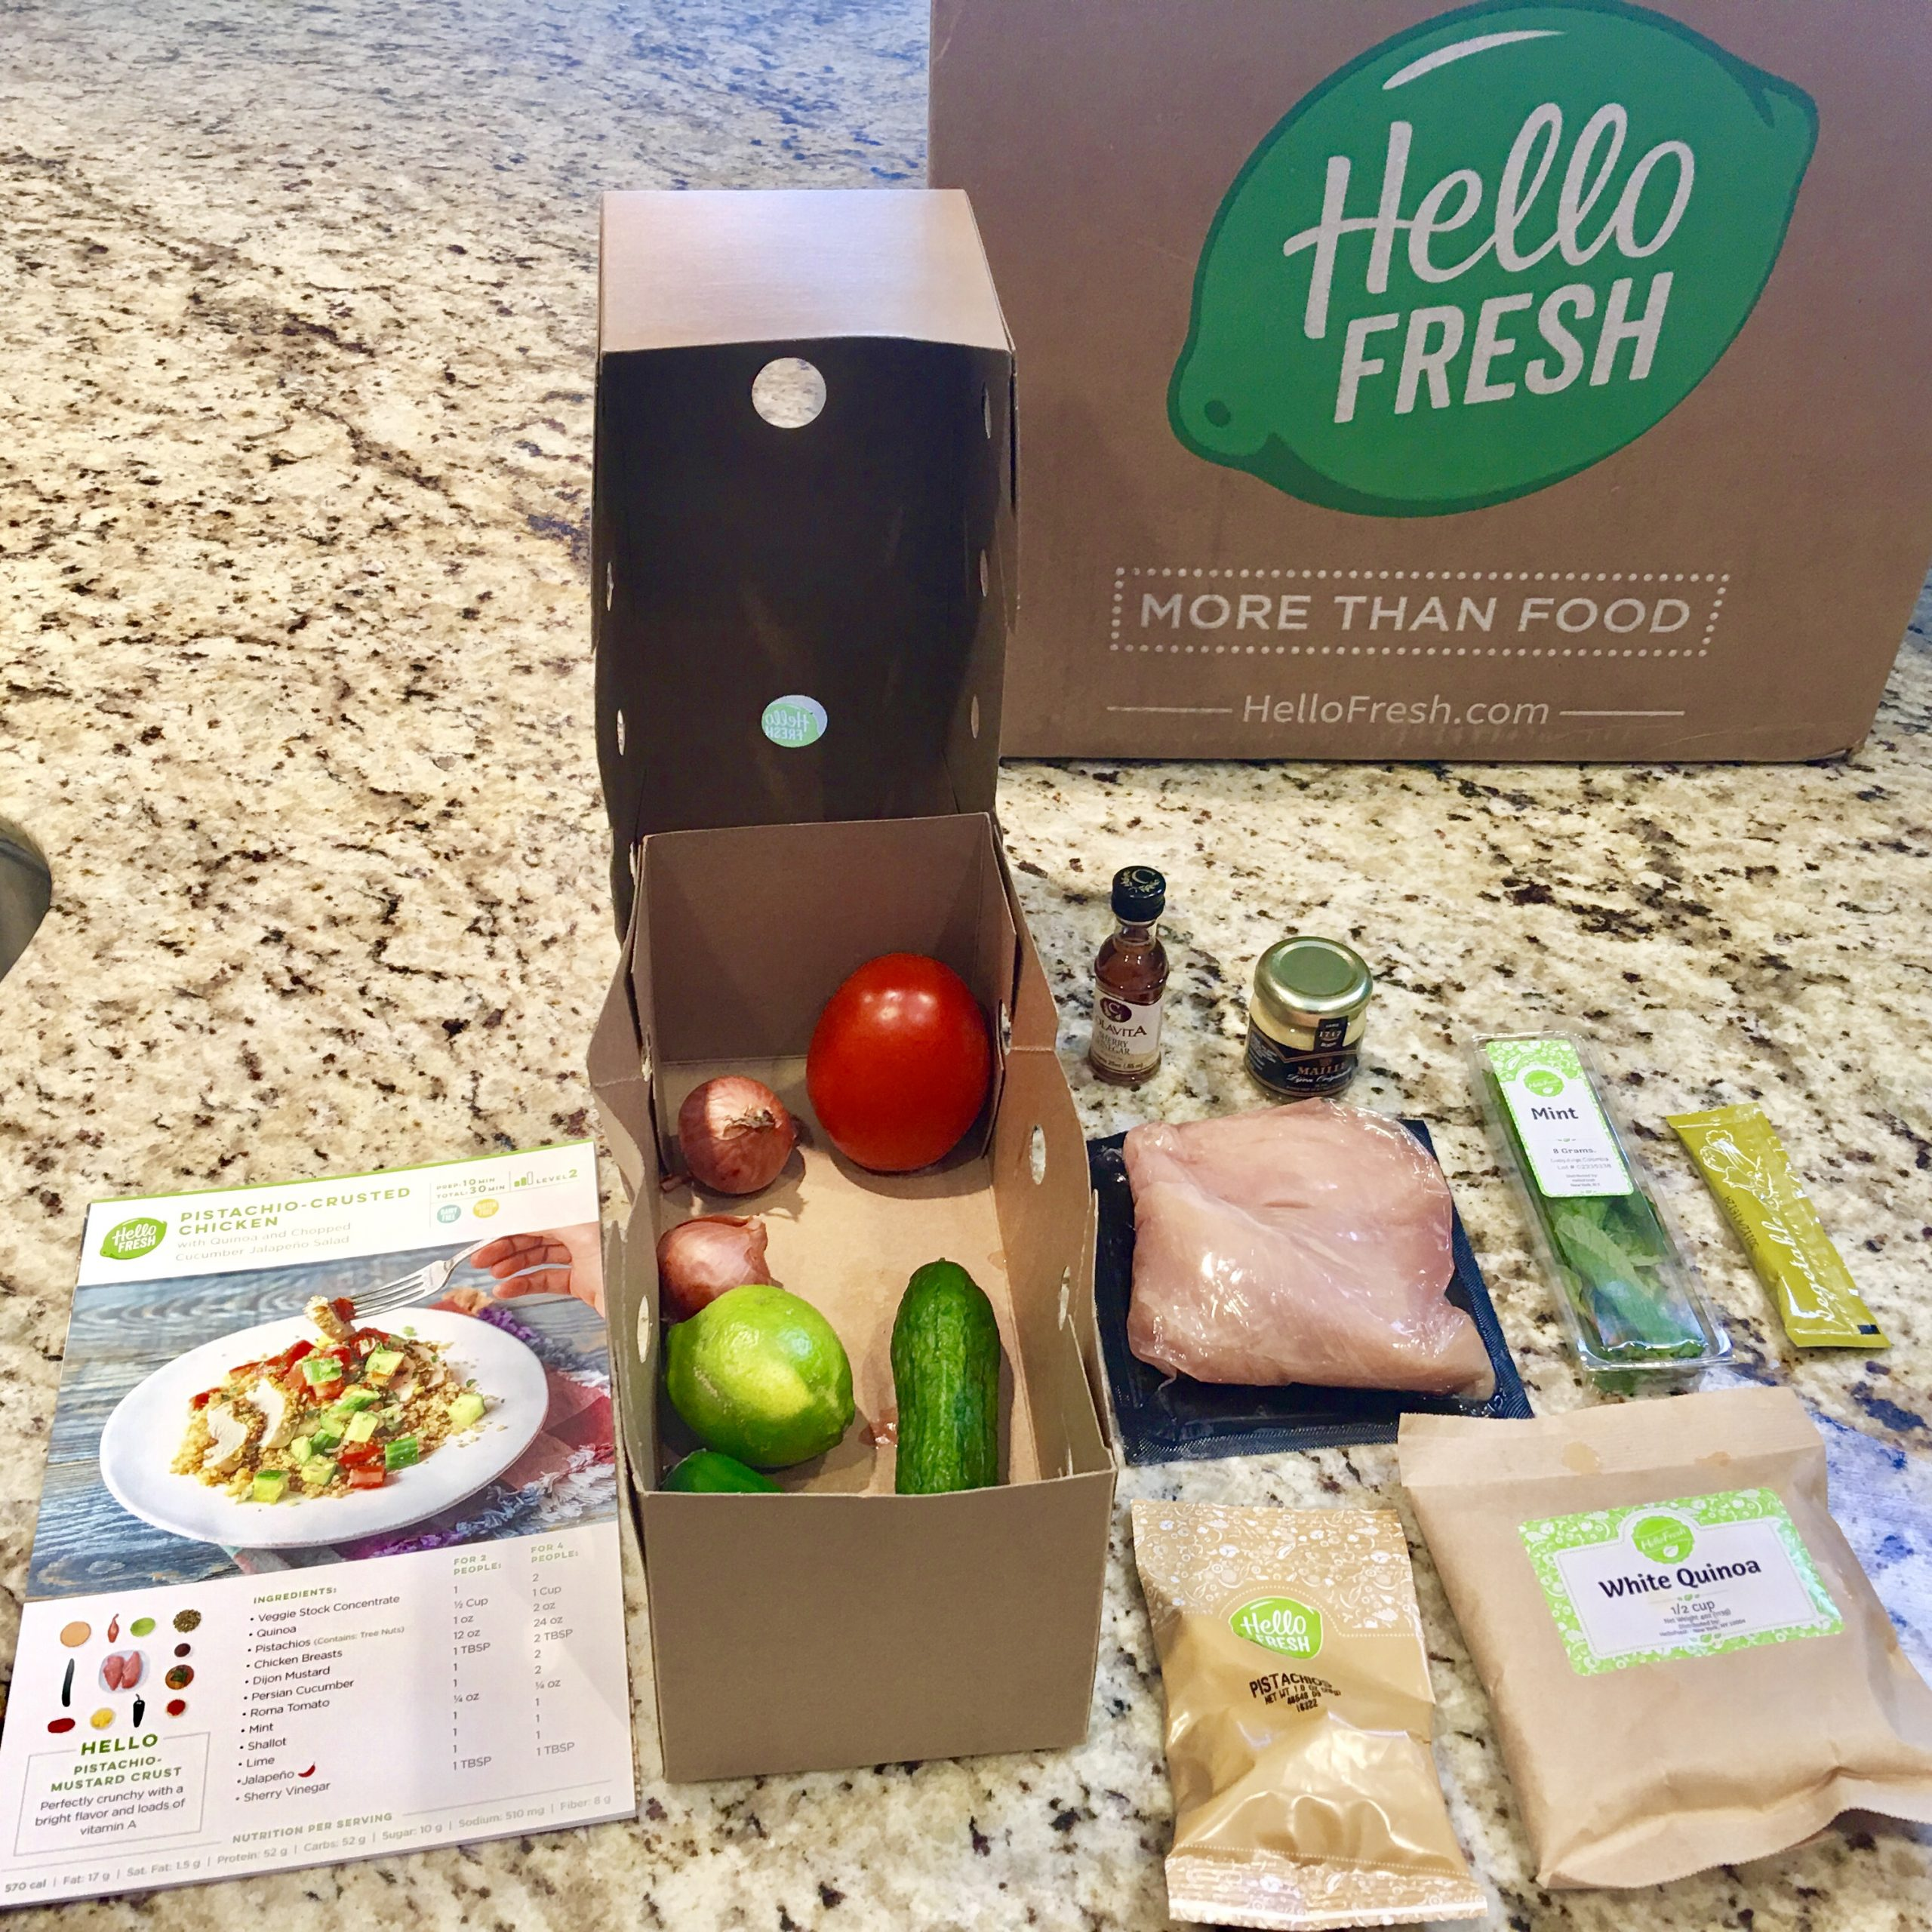 Hellofresh  Meal Kit Delivery Service Outlet Refer A Friend Code April 2020